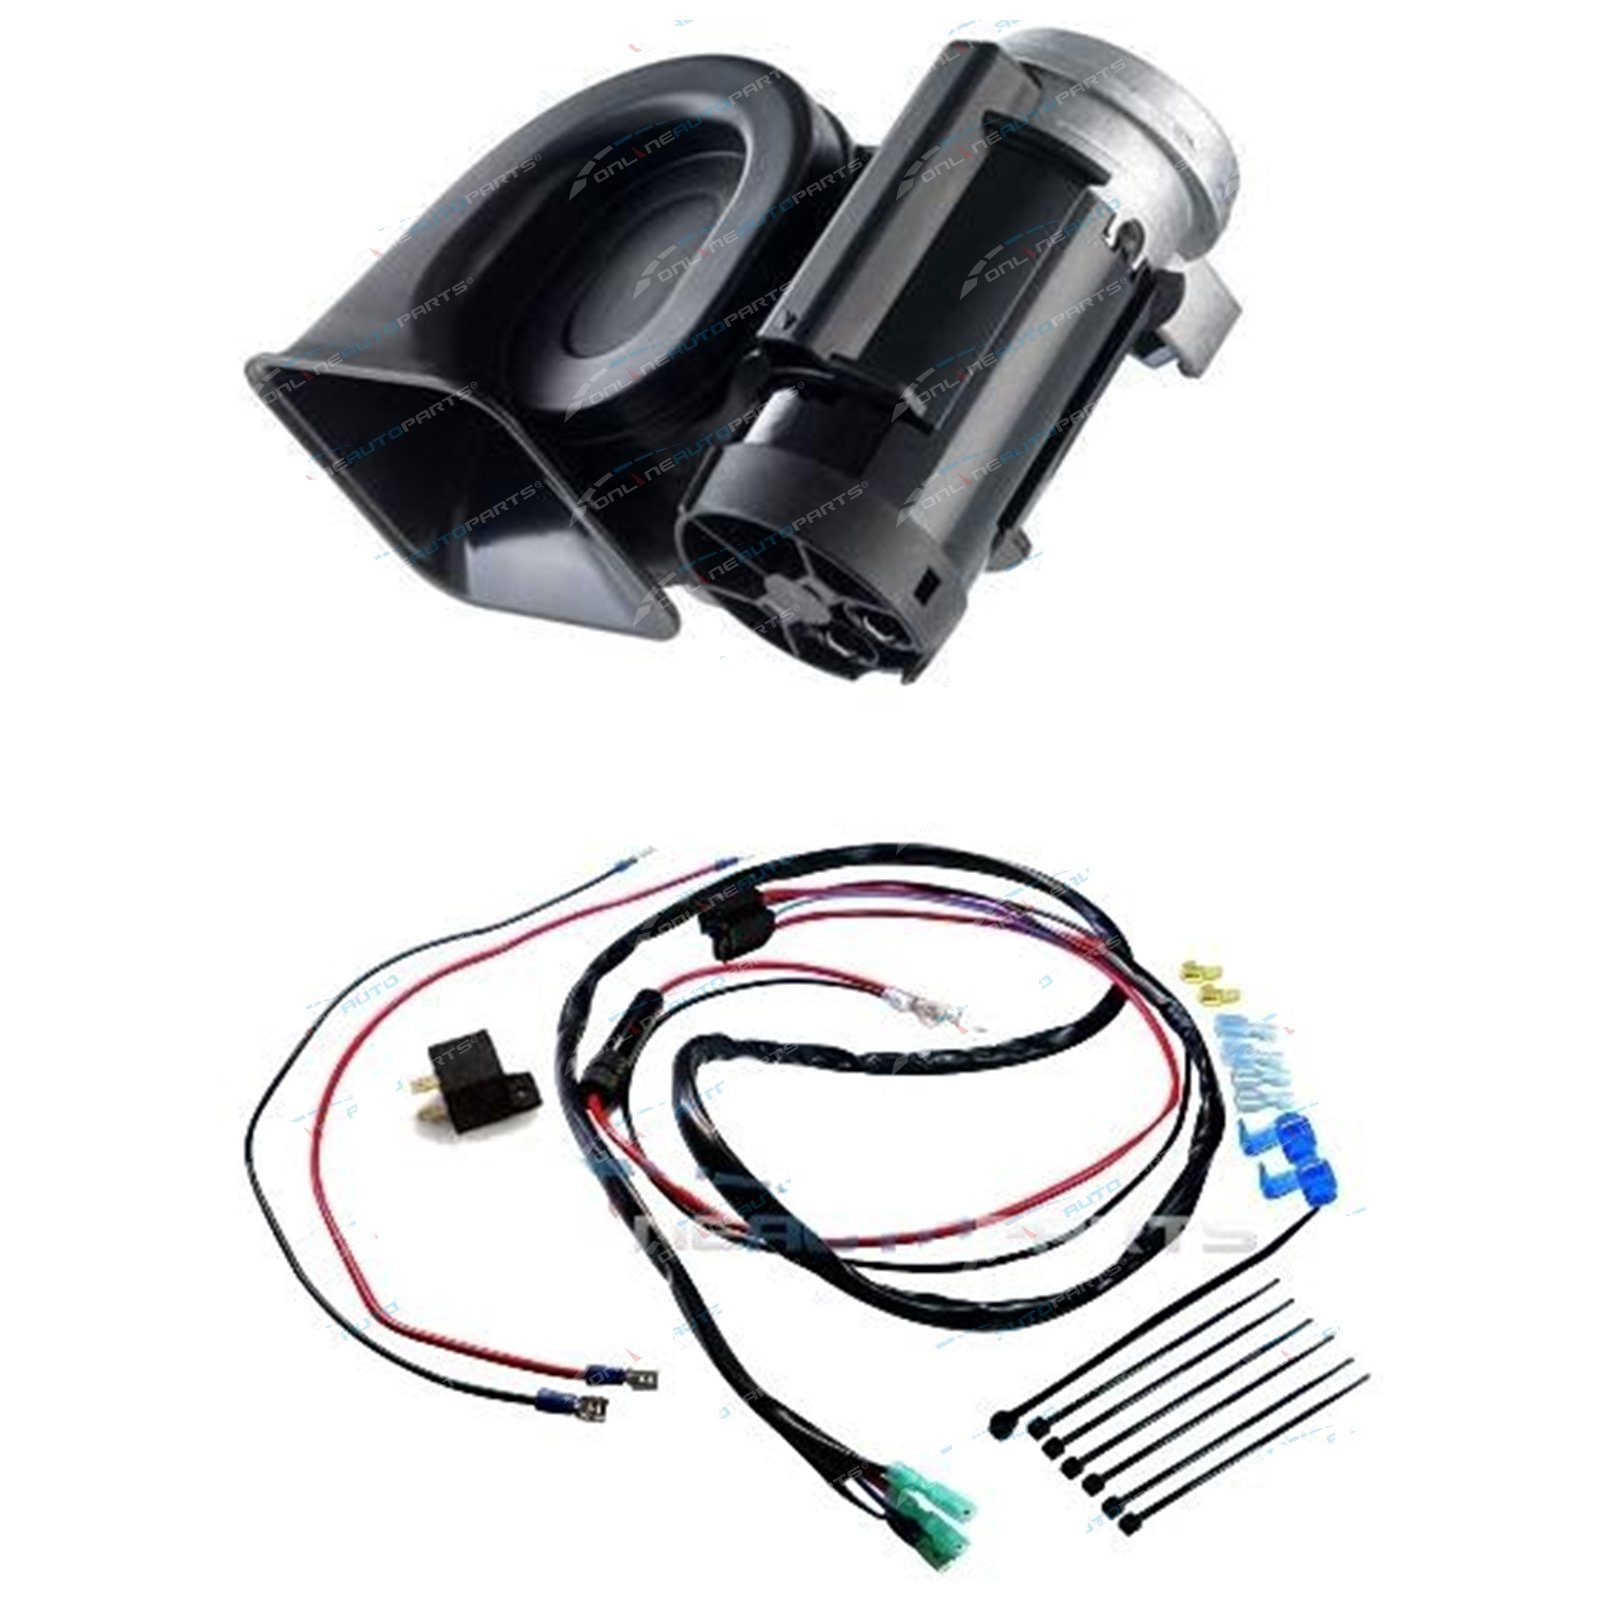 Stebel Nautilus Compact Truck Car Air Horn 12volt 300hz Deep 110db Dodge Relay Wiring Click To Enlarge